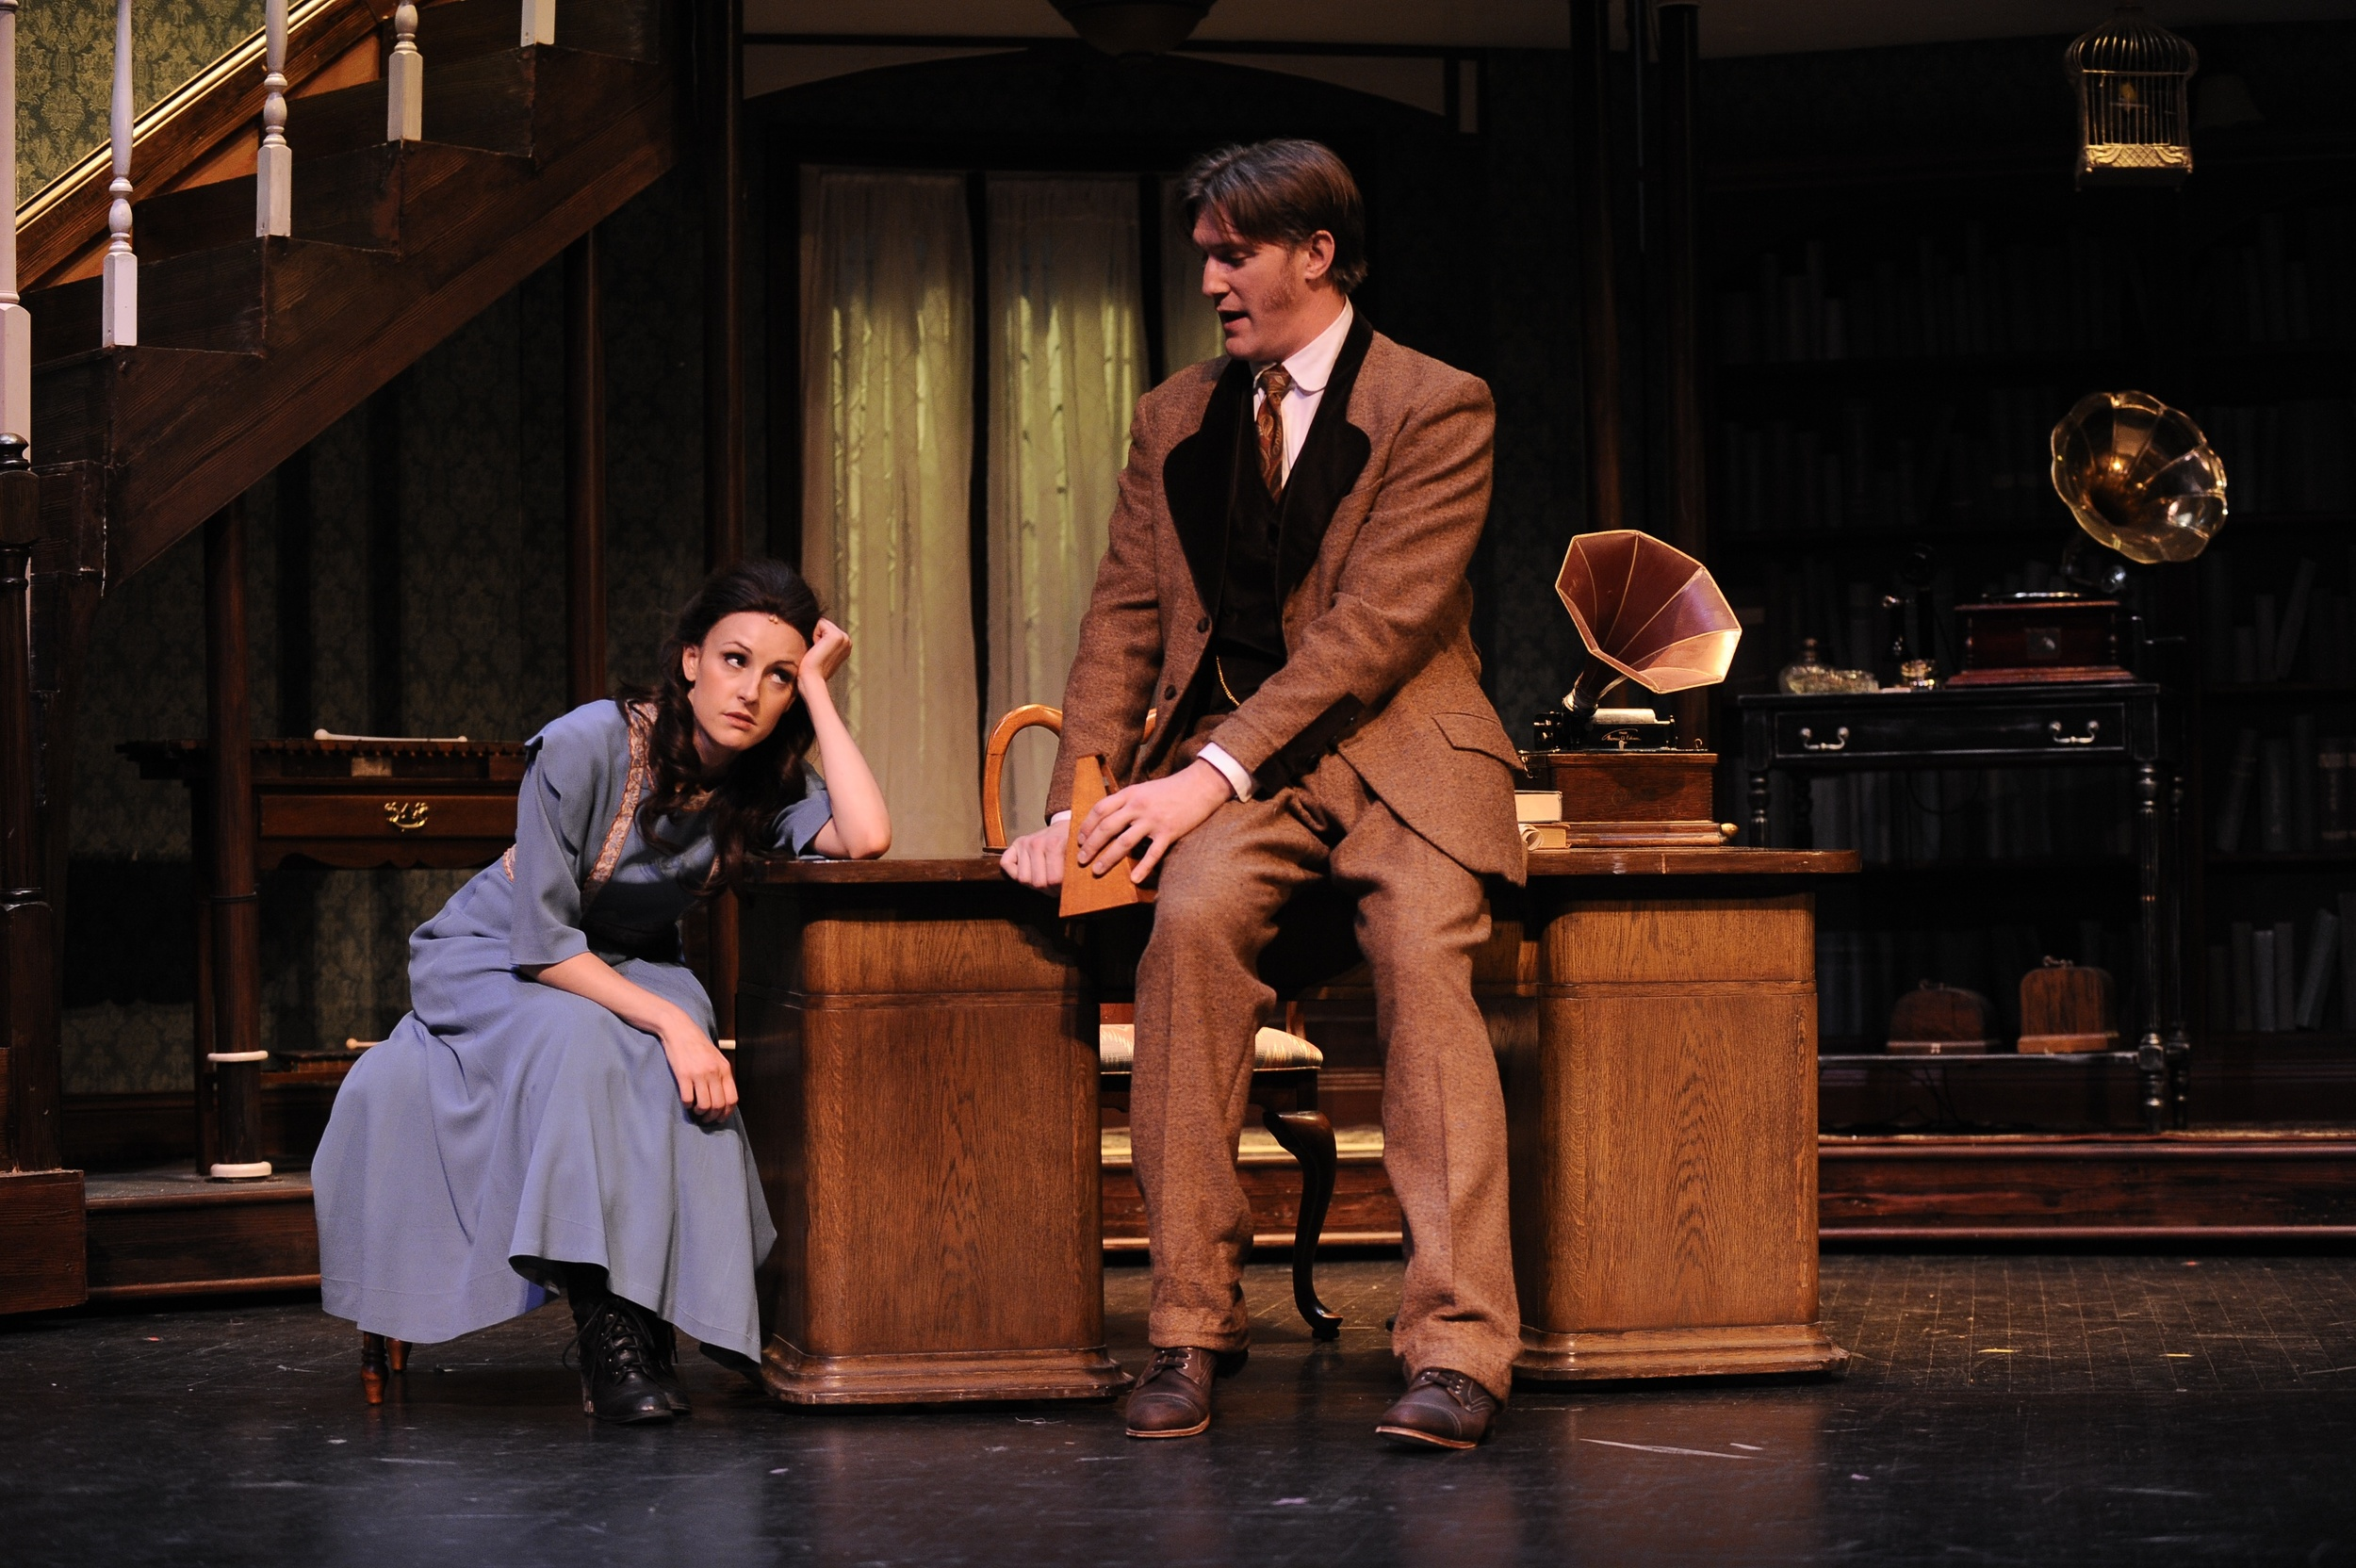 as-eliza-doolittle-in-my-fair-lady-with-nathan-hosner_6960981153_o.jpg